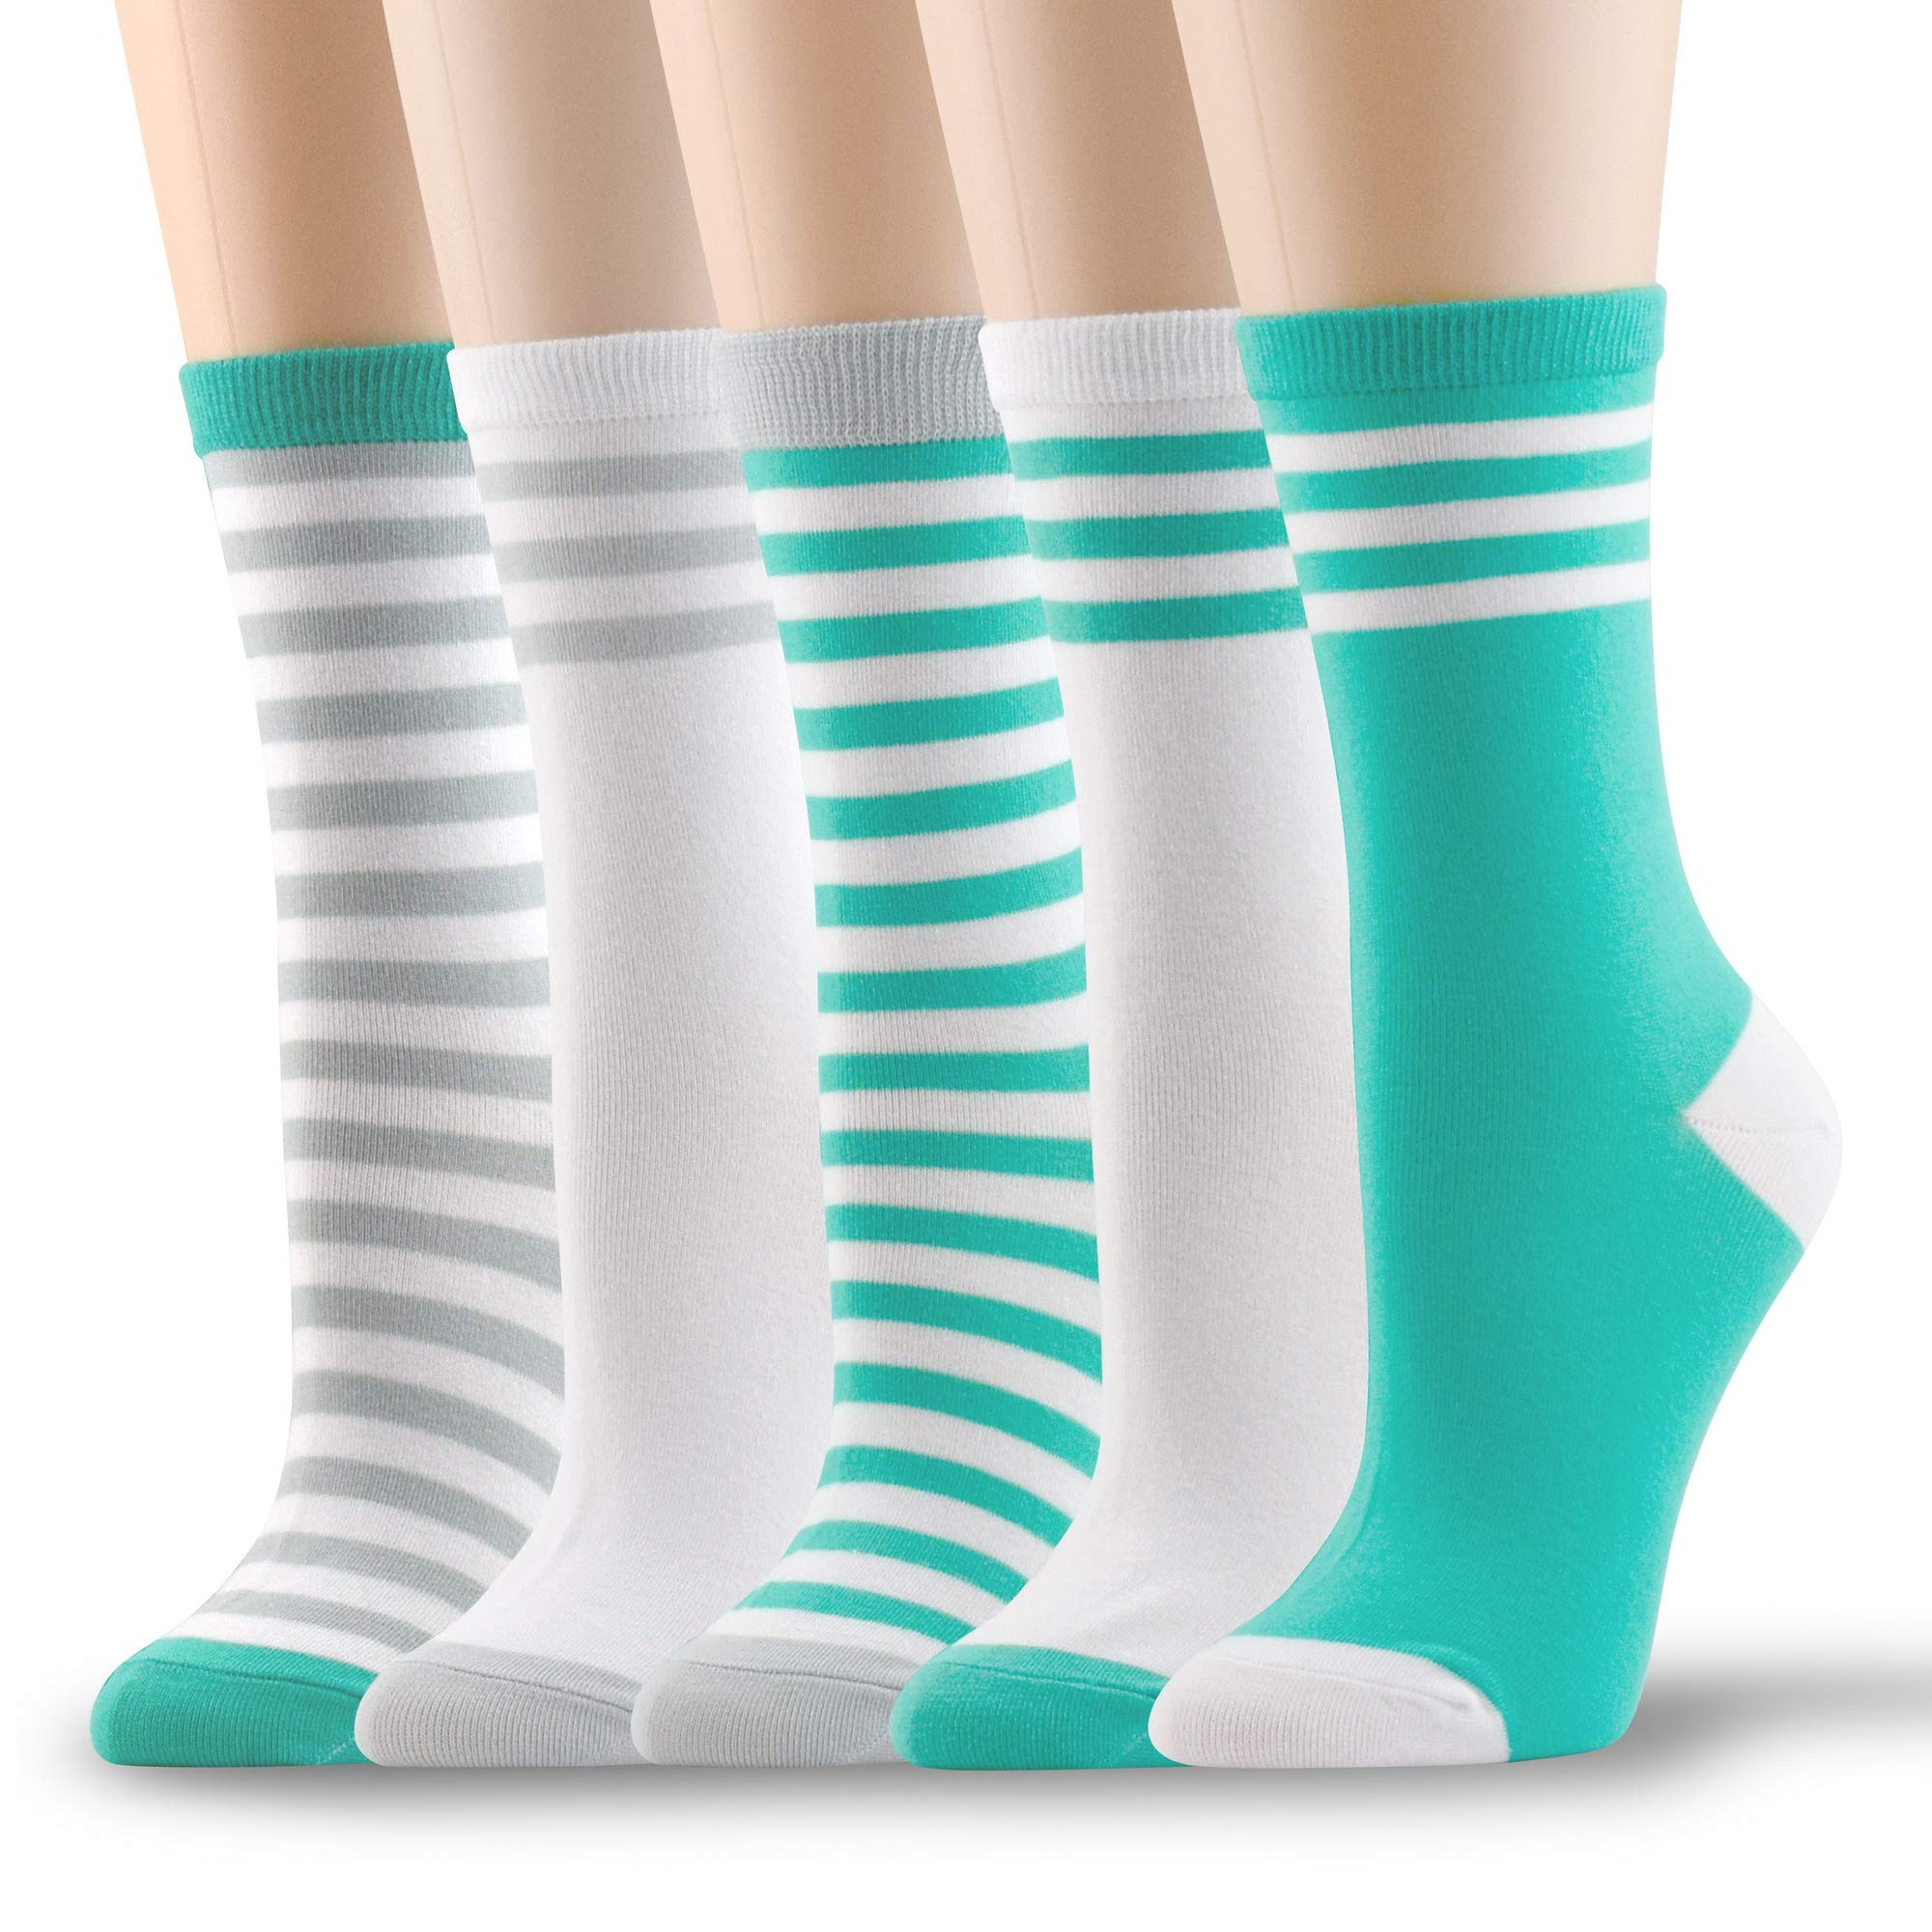 Socksmood 5 Pairs Women's Cotton Crew Socks Stripe Patterns Assorted Colors